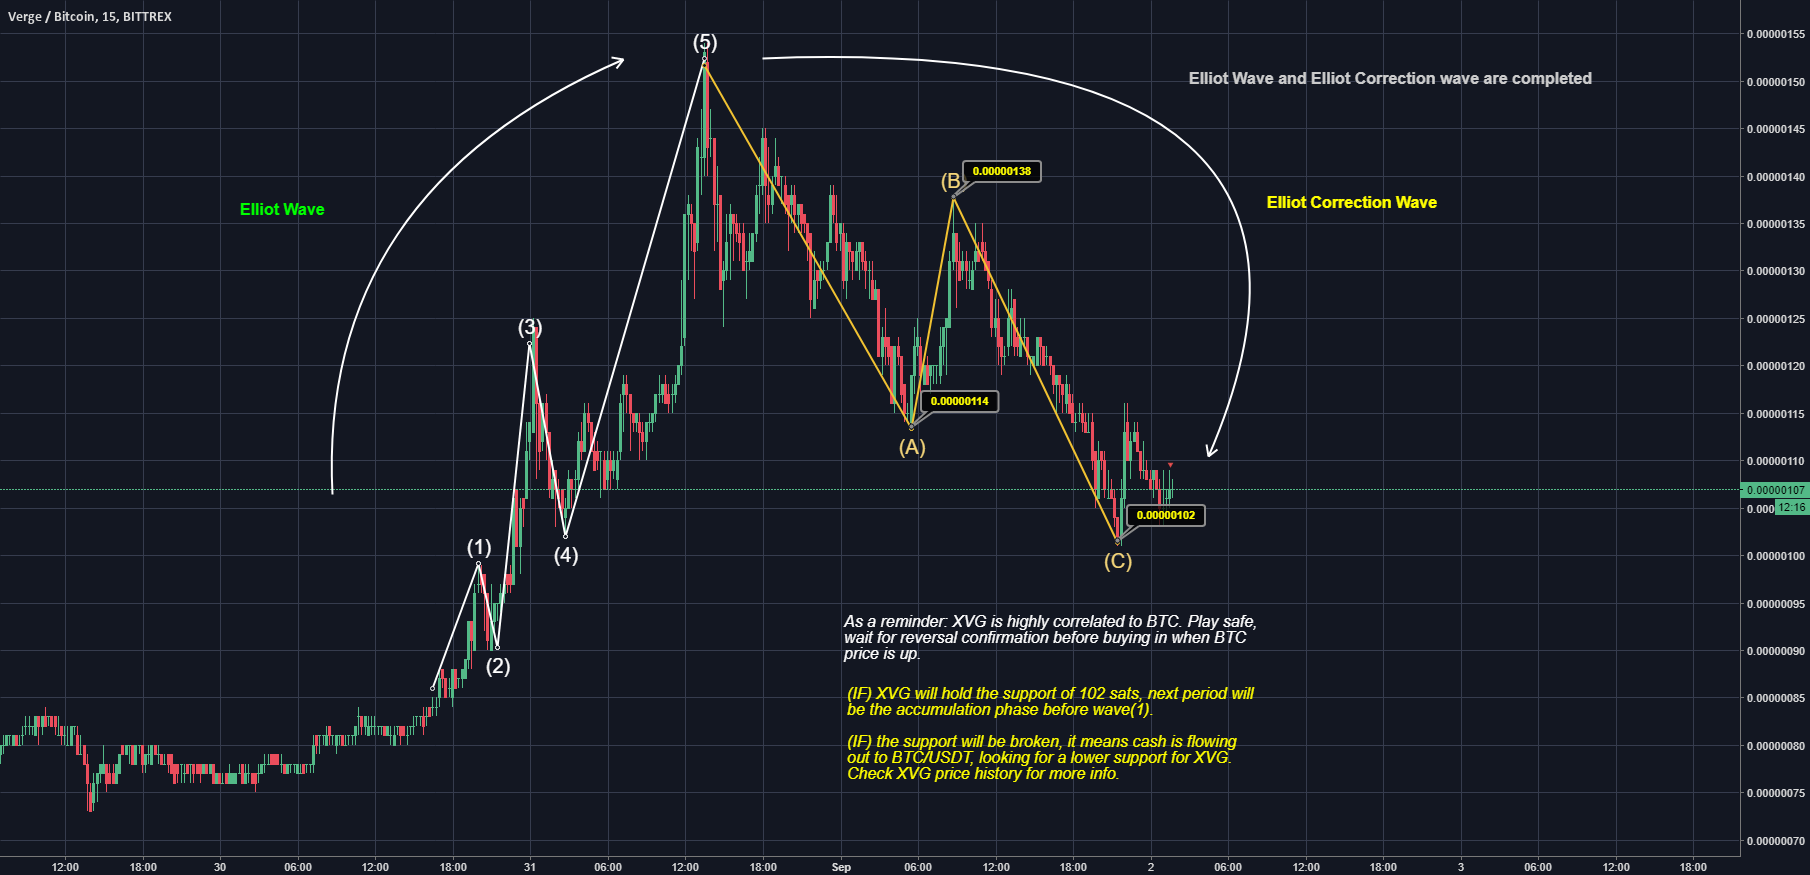 XVG current wave and market prediction